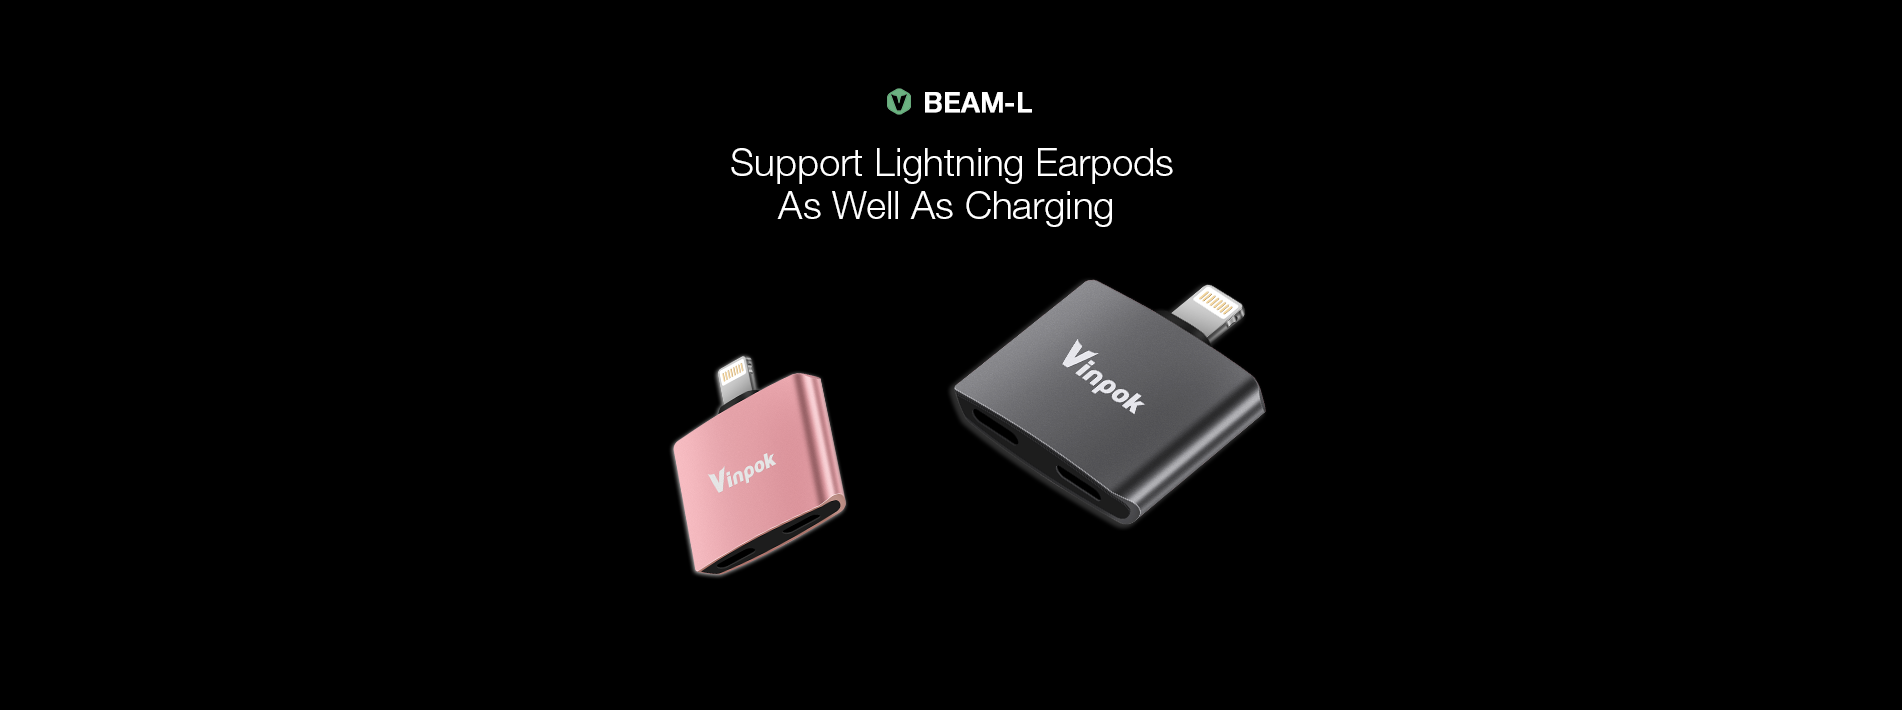 support lightning earpods as well as charging